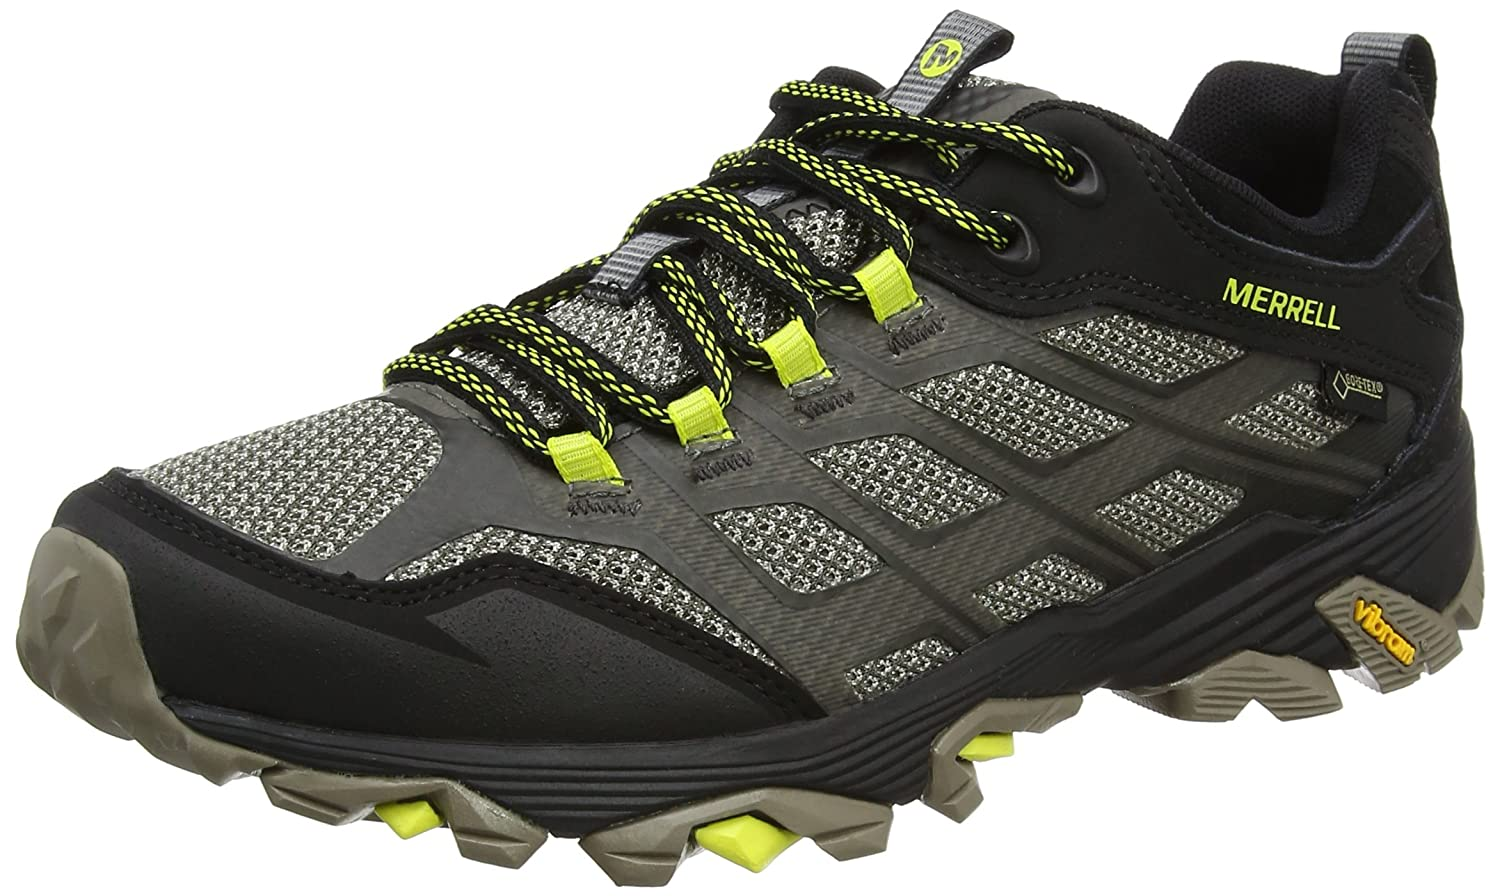 Merrell Mens Moab FST GTX Waterproof Walking Hiking Shoes